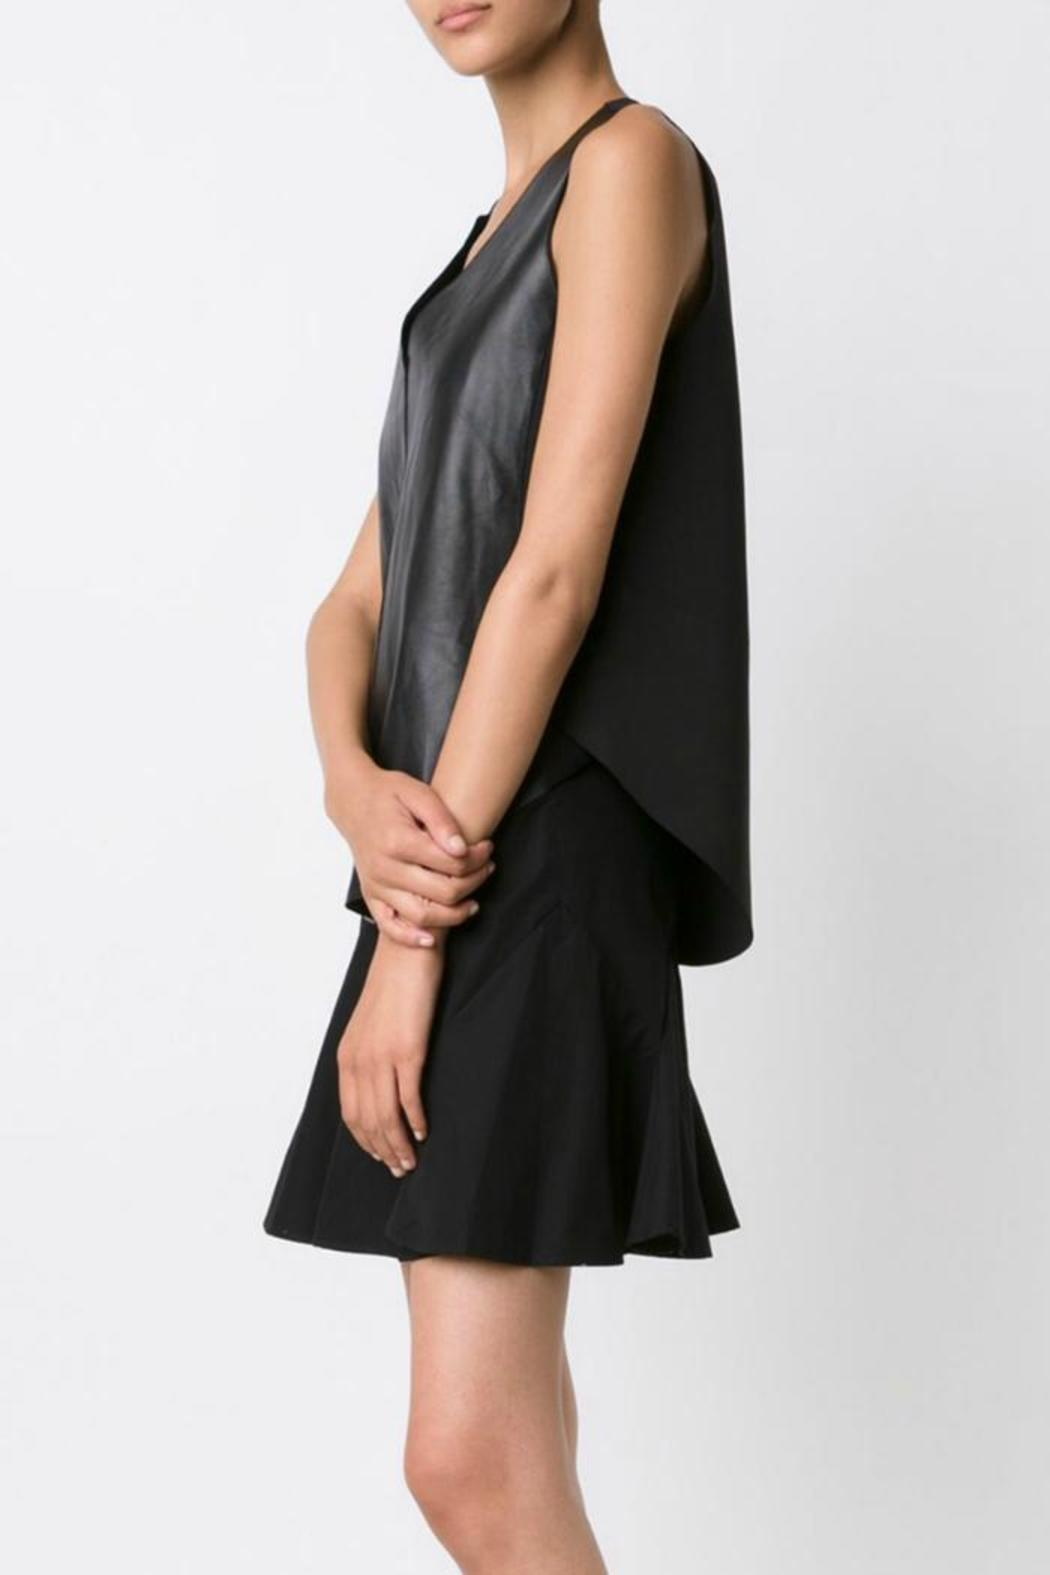 Derek lam 10 crosby tank dress from canada by era style for Derek lam 10 crosby shirt dress